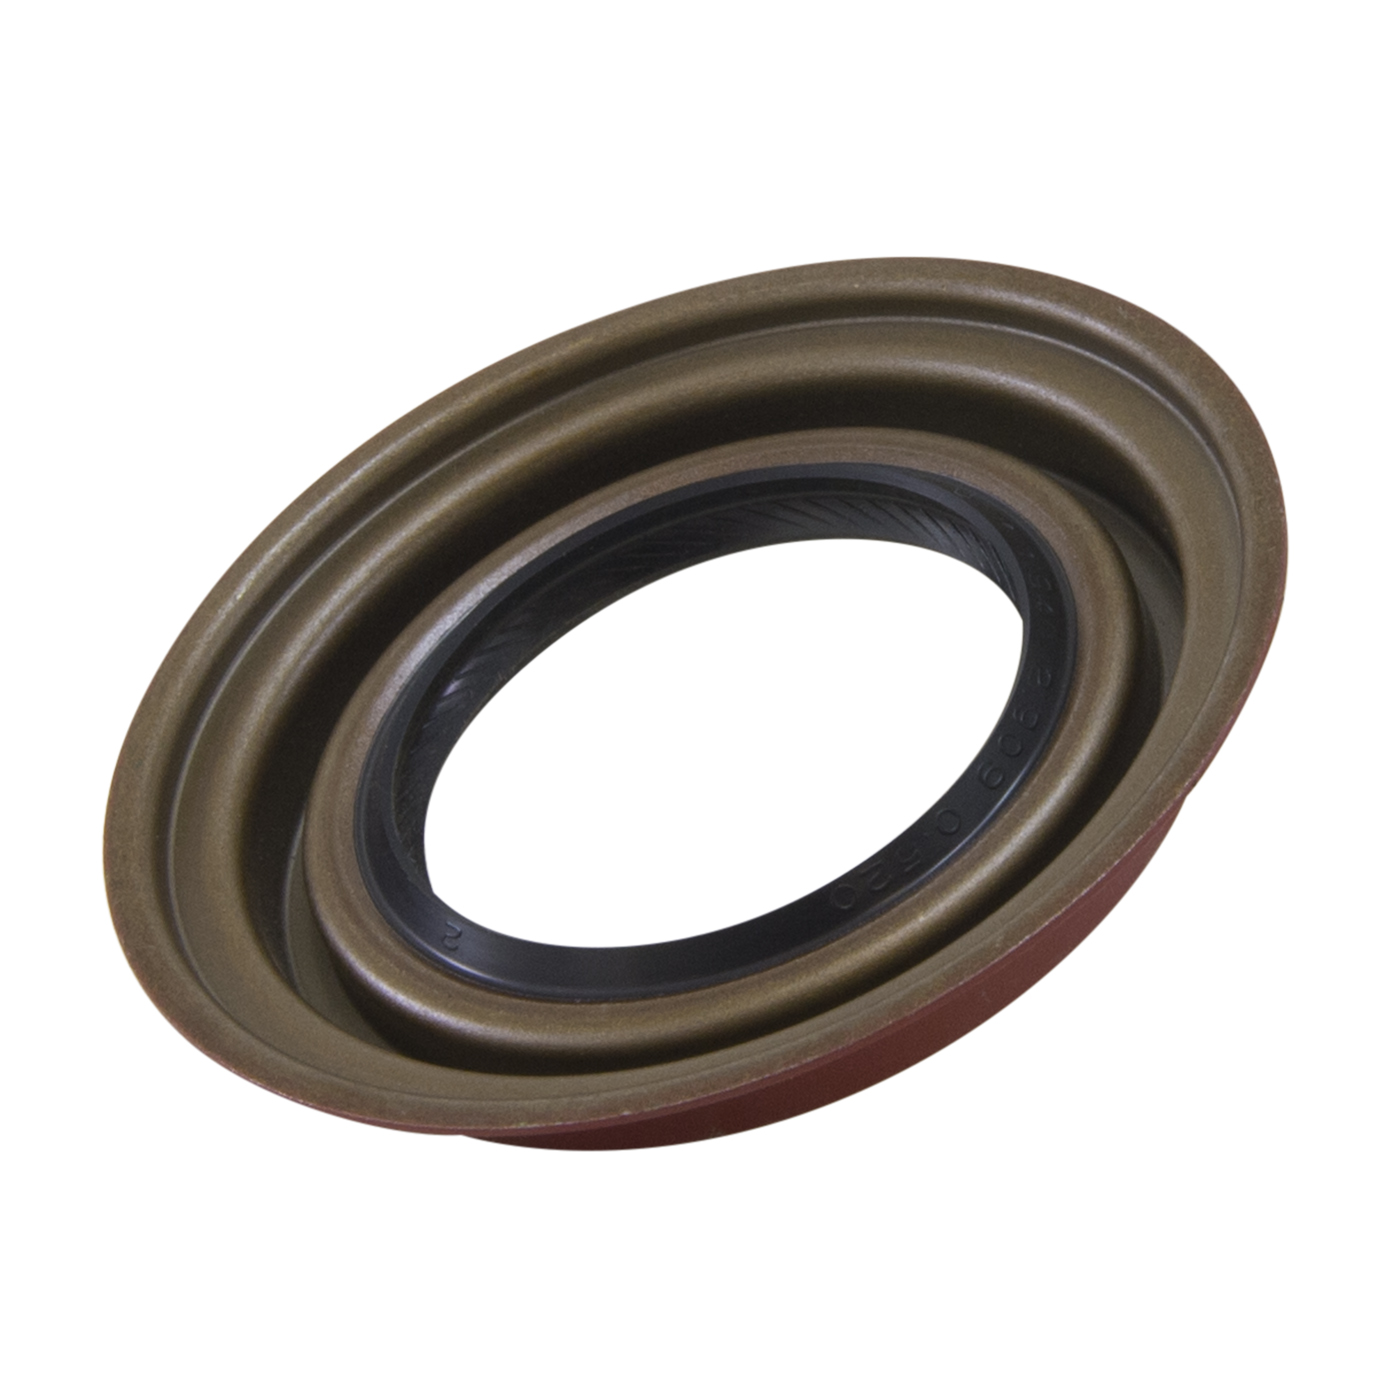 YMS3896 - Pinion seal for 9.5